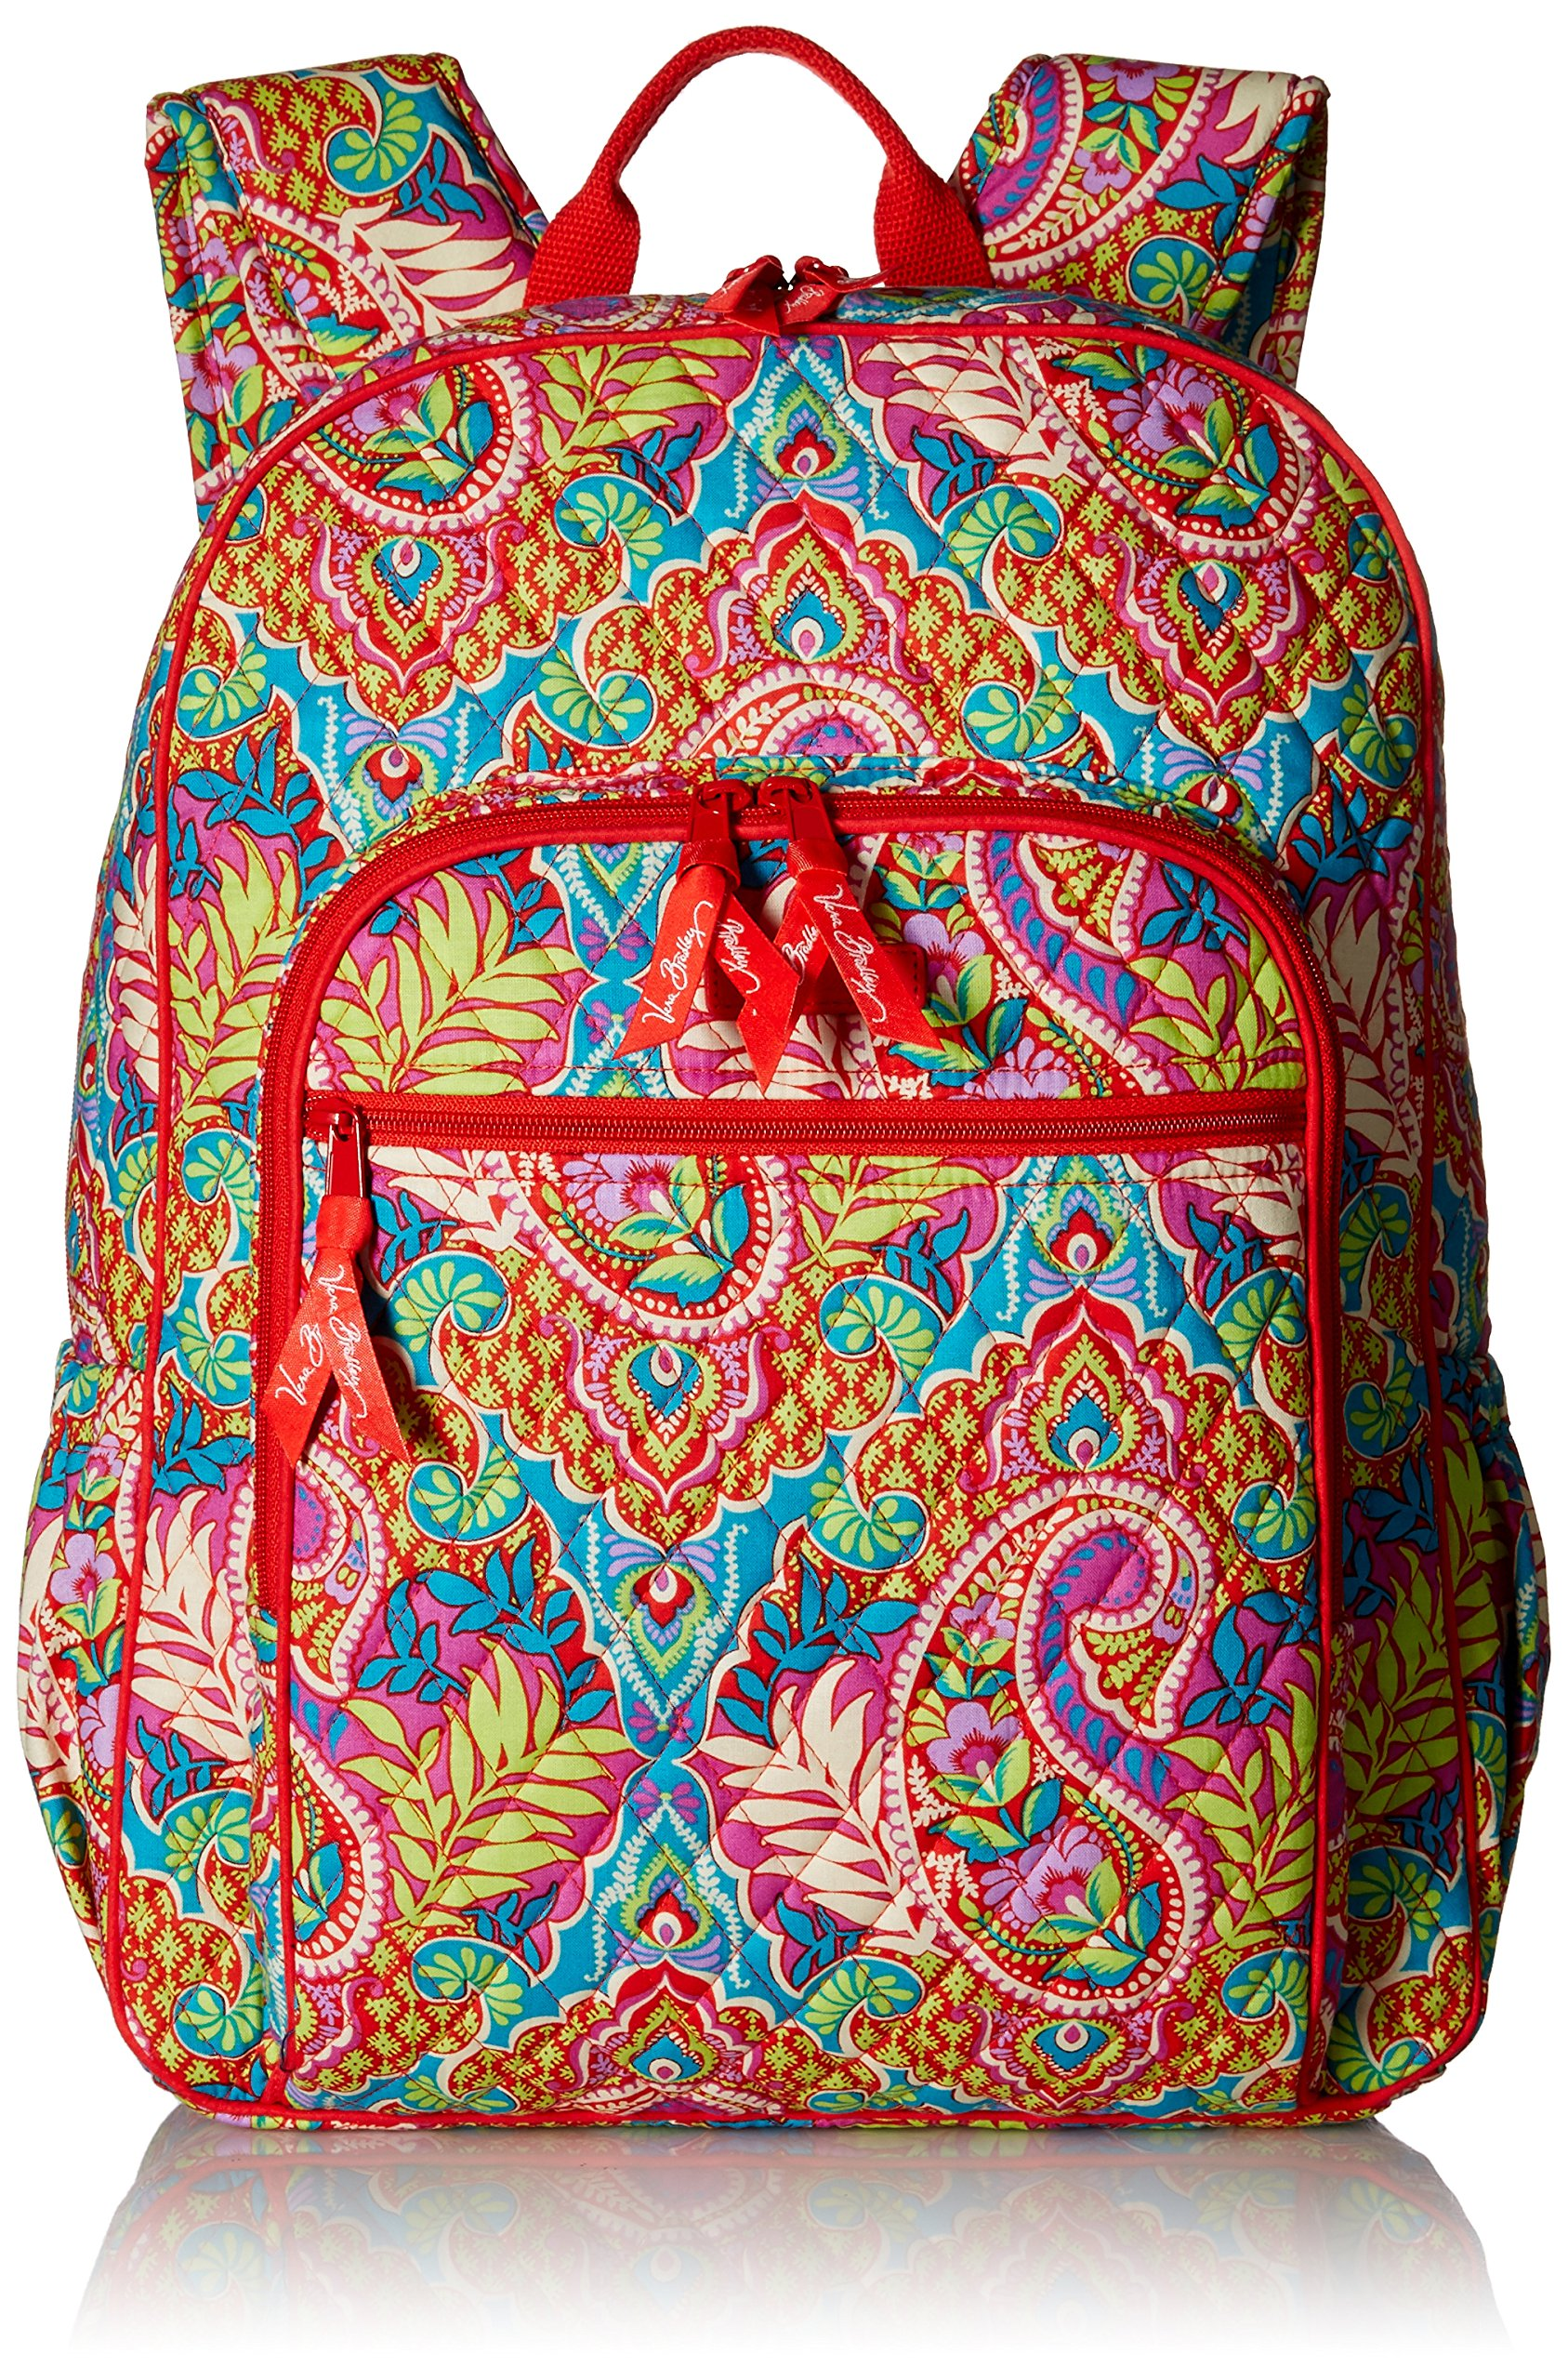 Women's Campus Tech Backpack, Signature Cotton, Paisley in Paradise by Vera Bradley